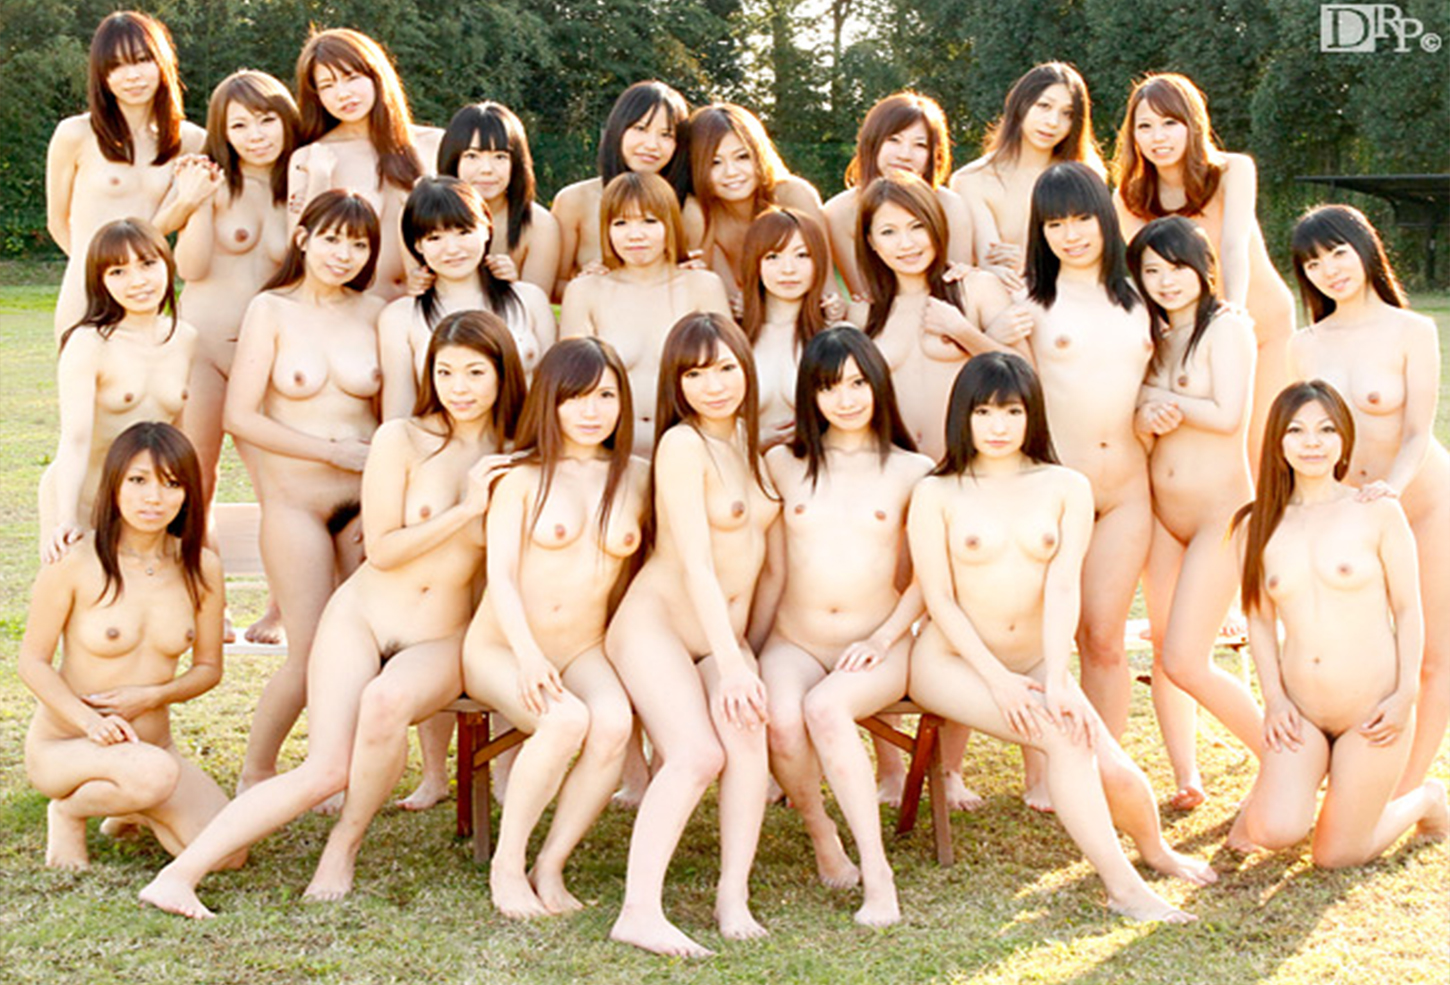 Sorry, not Group nude japanese girls naked think